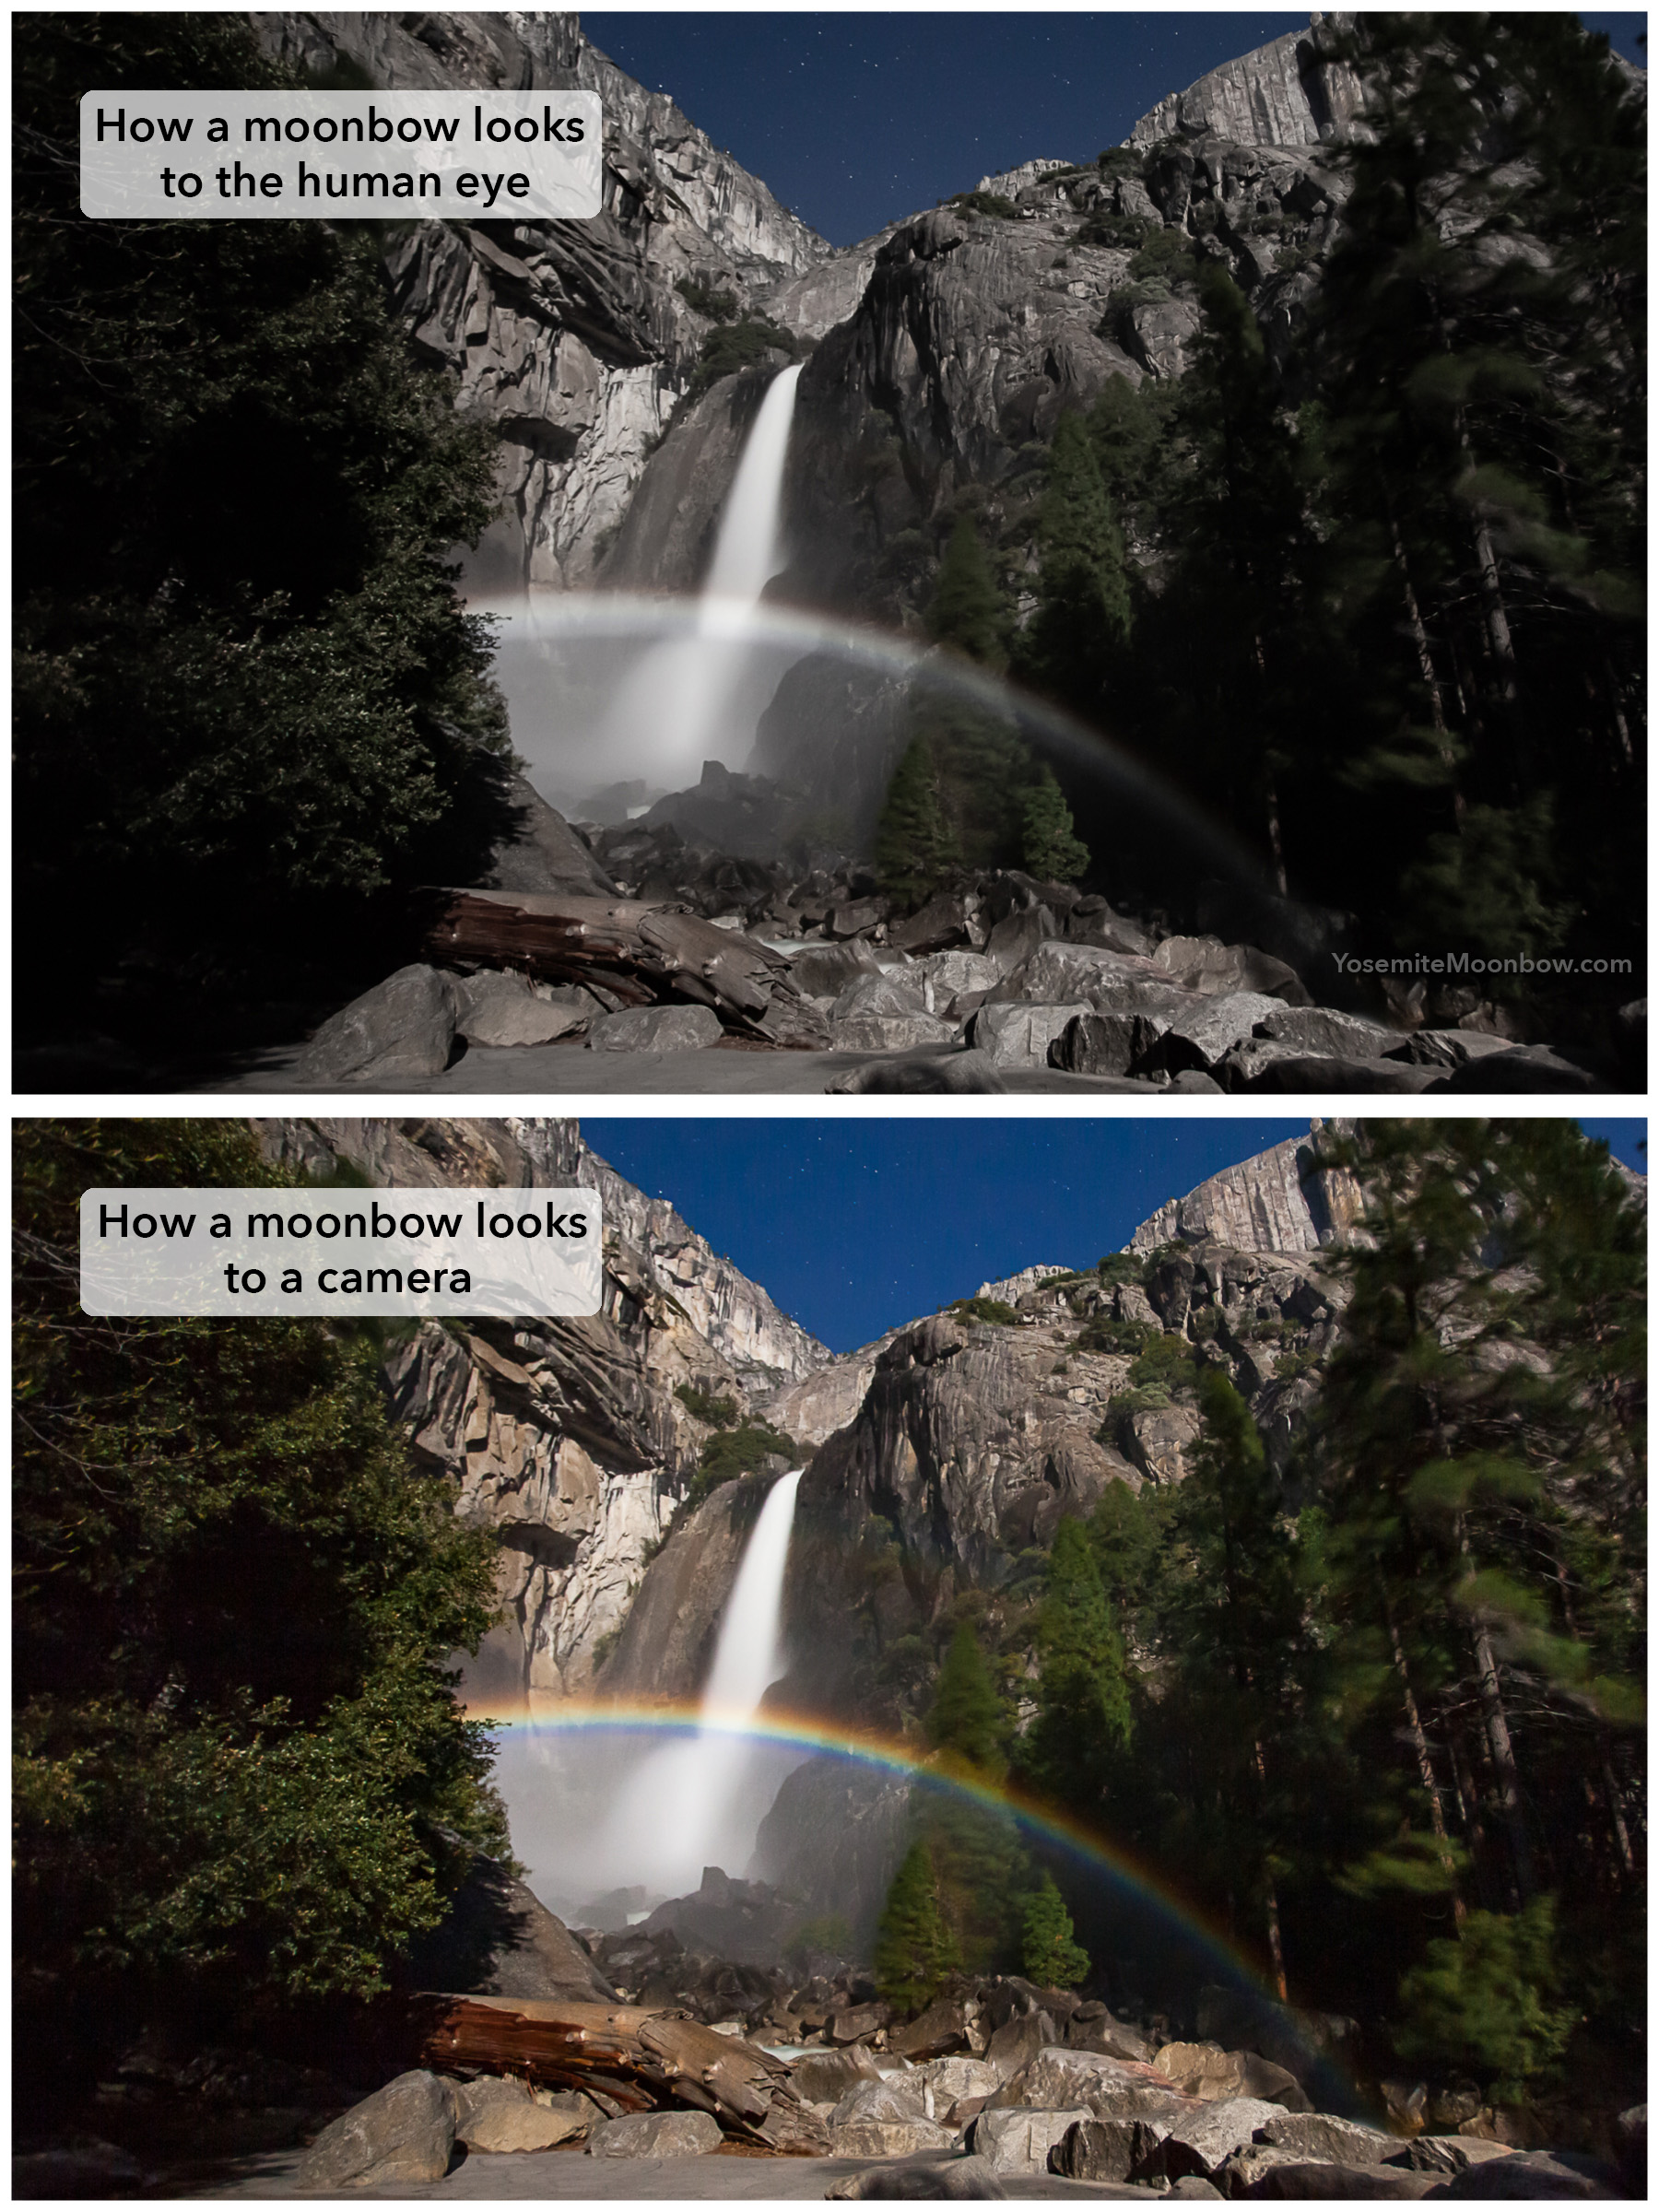 moonbow camera versus human eye comparison.jpg